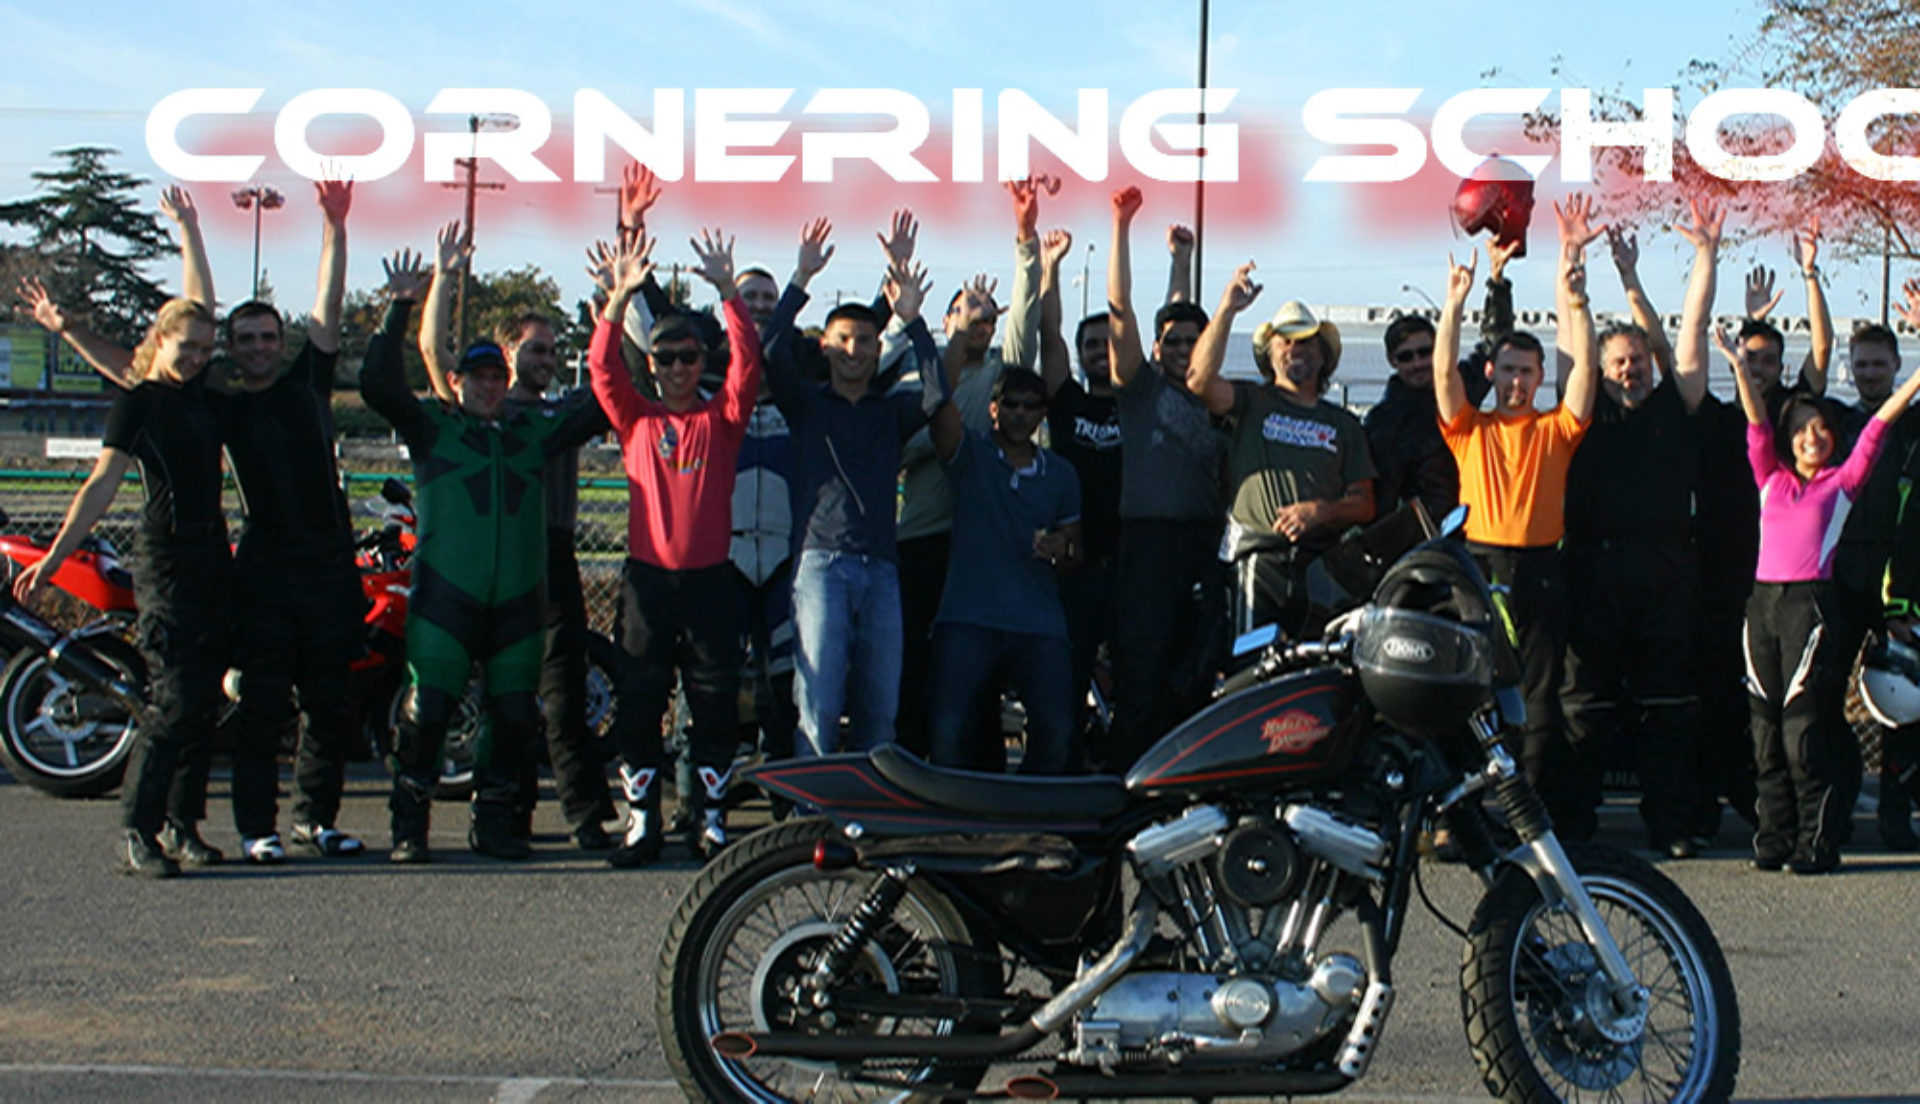 Motorcycle street rider school in California